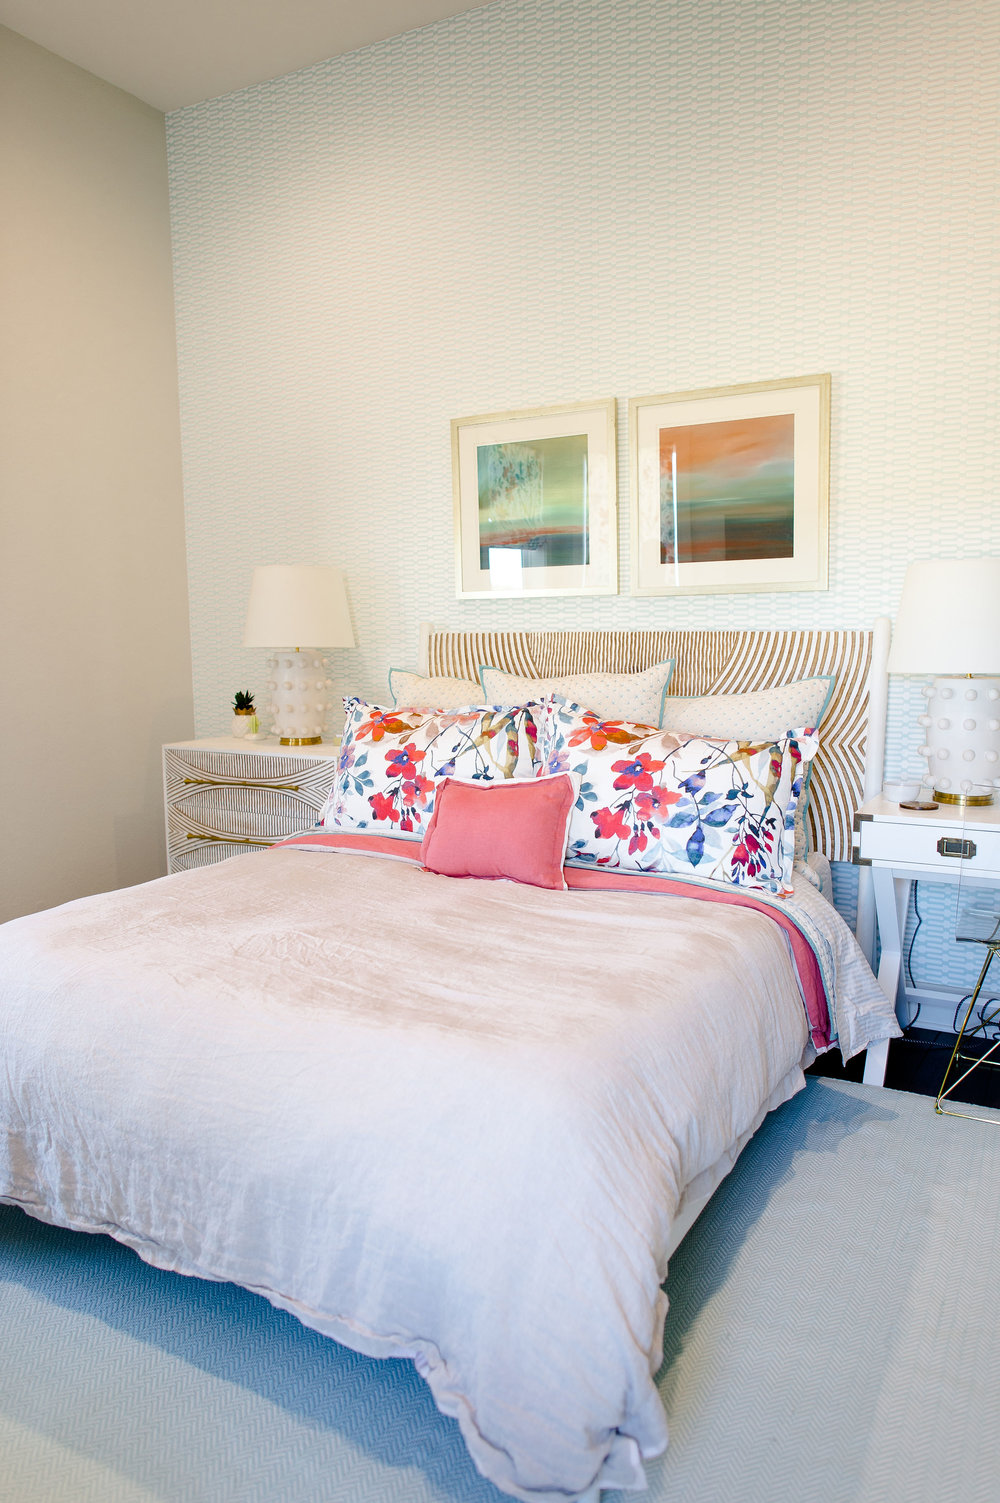 hill-country-transitional-clark-design-studio-wichita-falls-tx-girls-bedroom.jpg